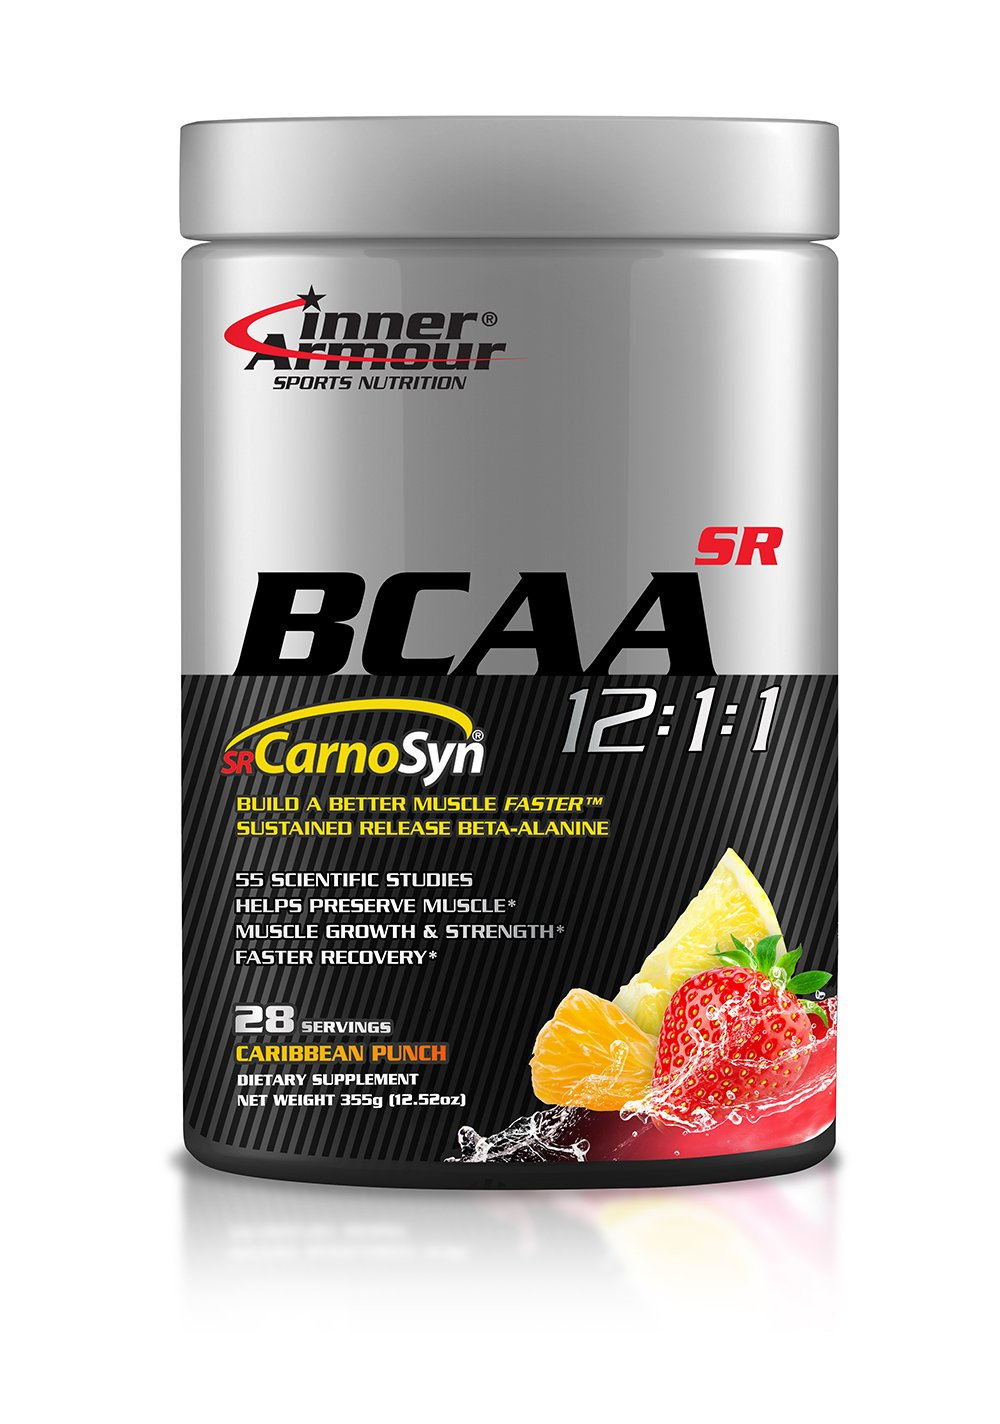 Inner Armour BCAA with SR CarnoSyn®, Caribbean Punch | Sustained Release Beta-Alanine, Improved Muscle Retention of Carnosine | 28 Servings